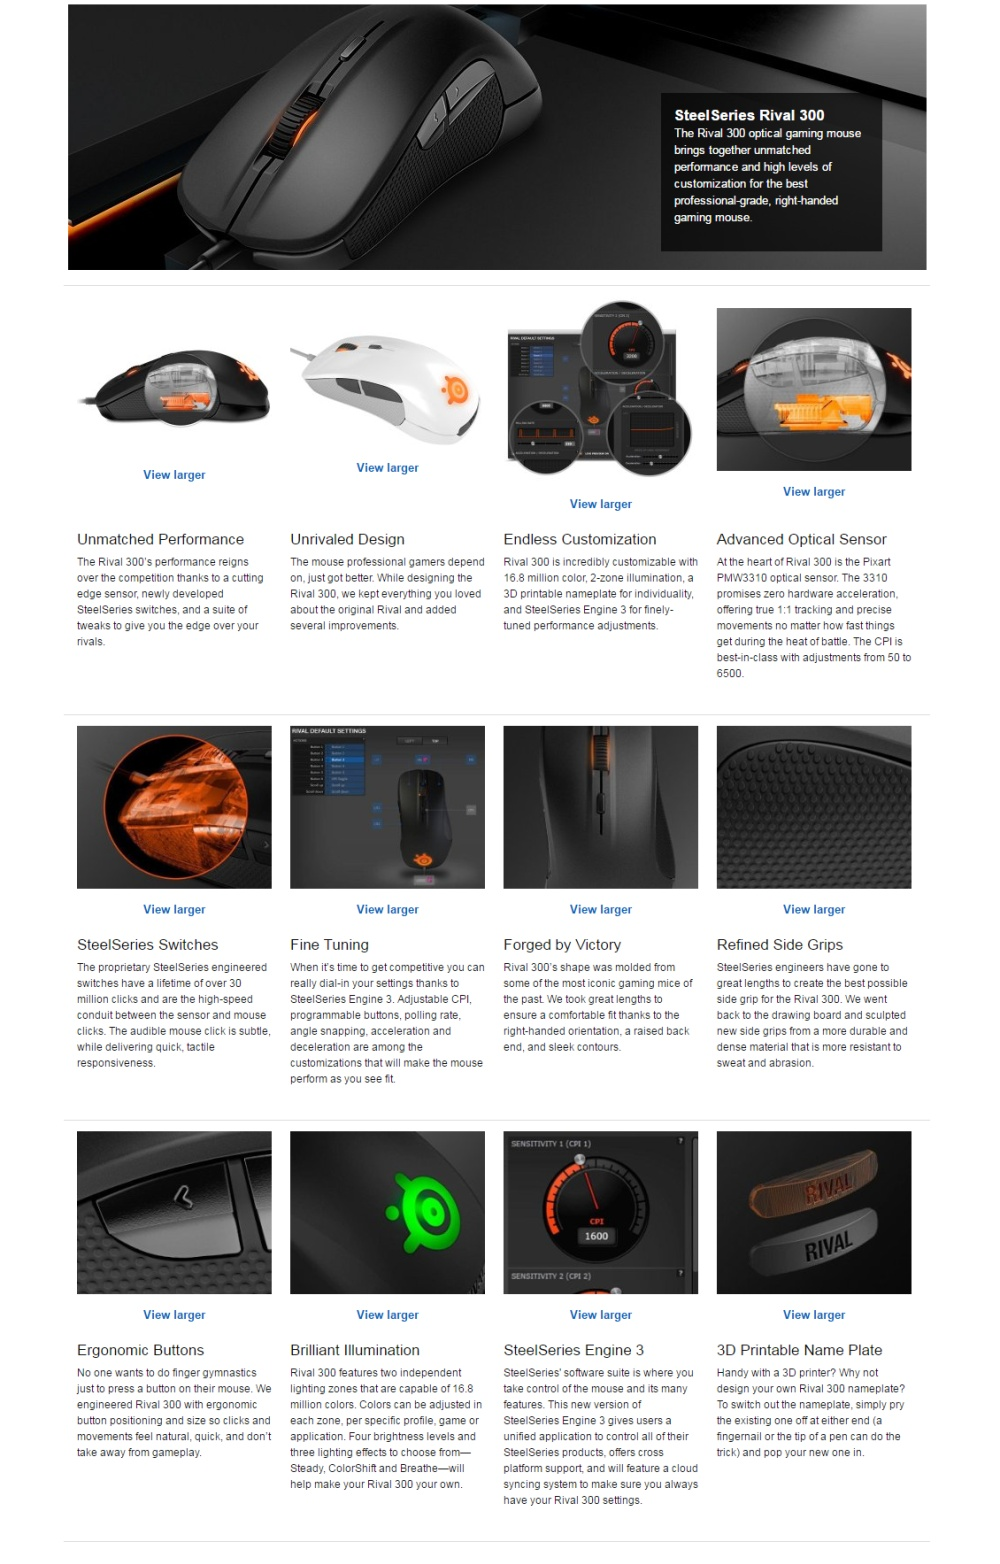 Specifications of SteelSeries Rival 300, Optical Gaming Mouse - Silver